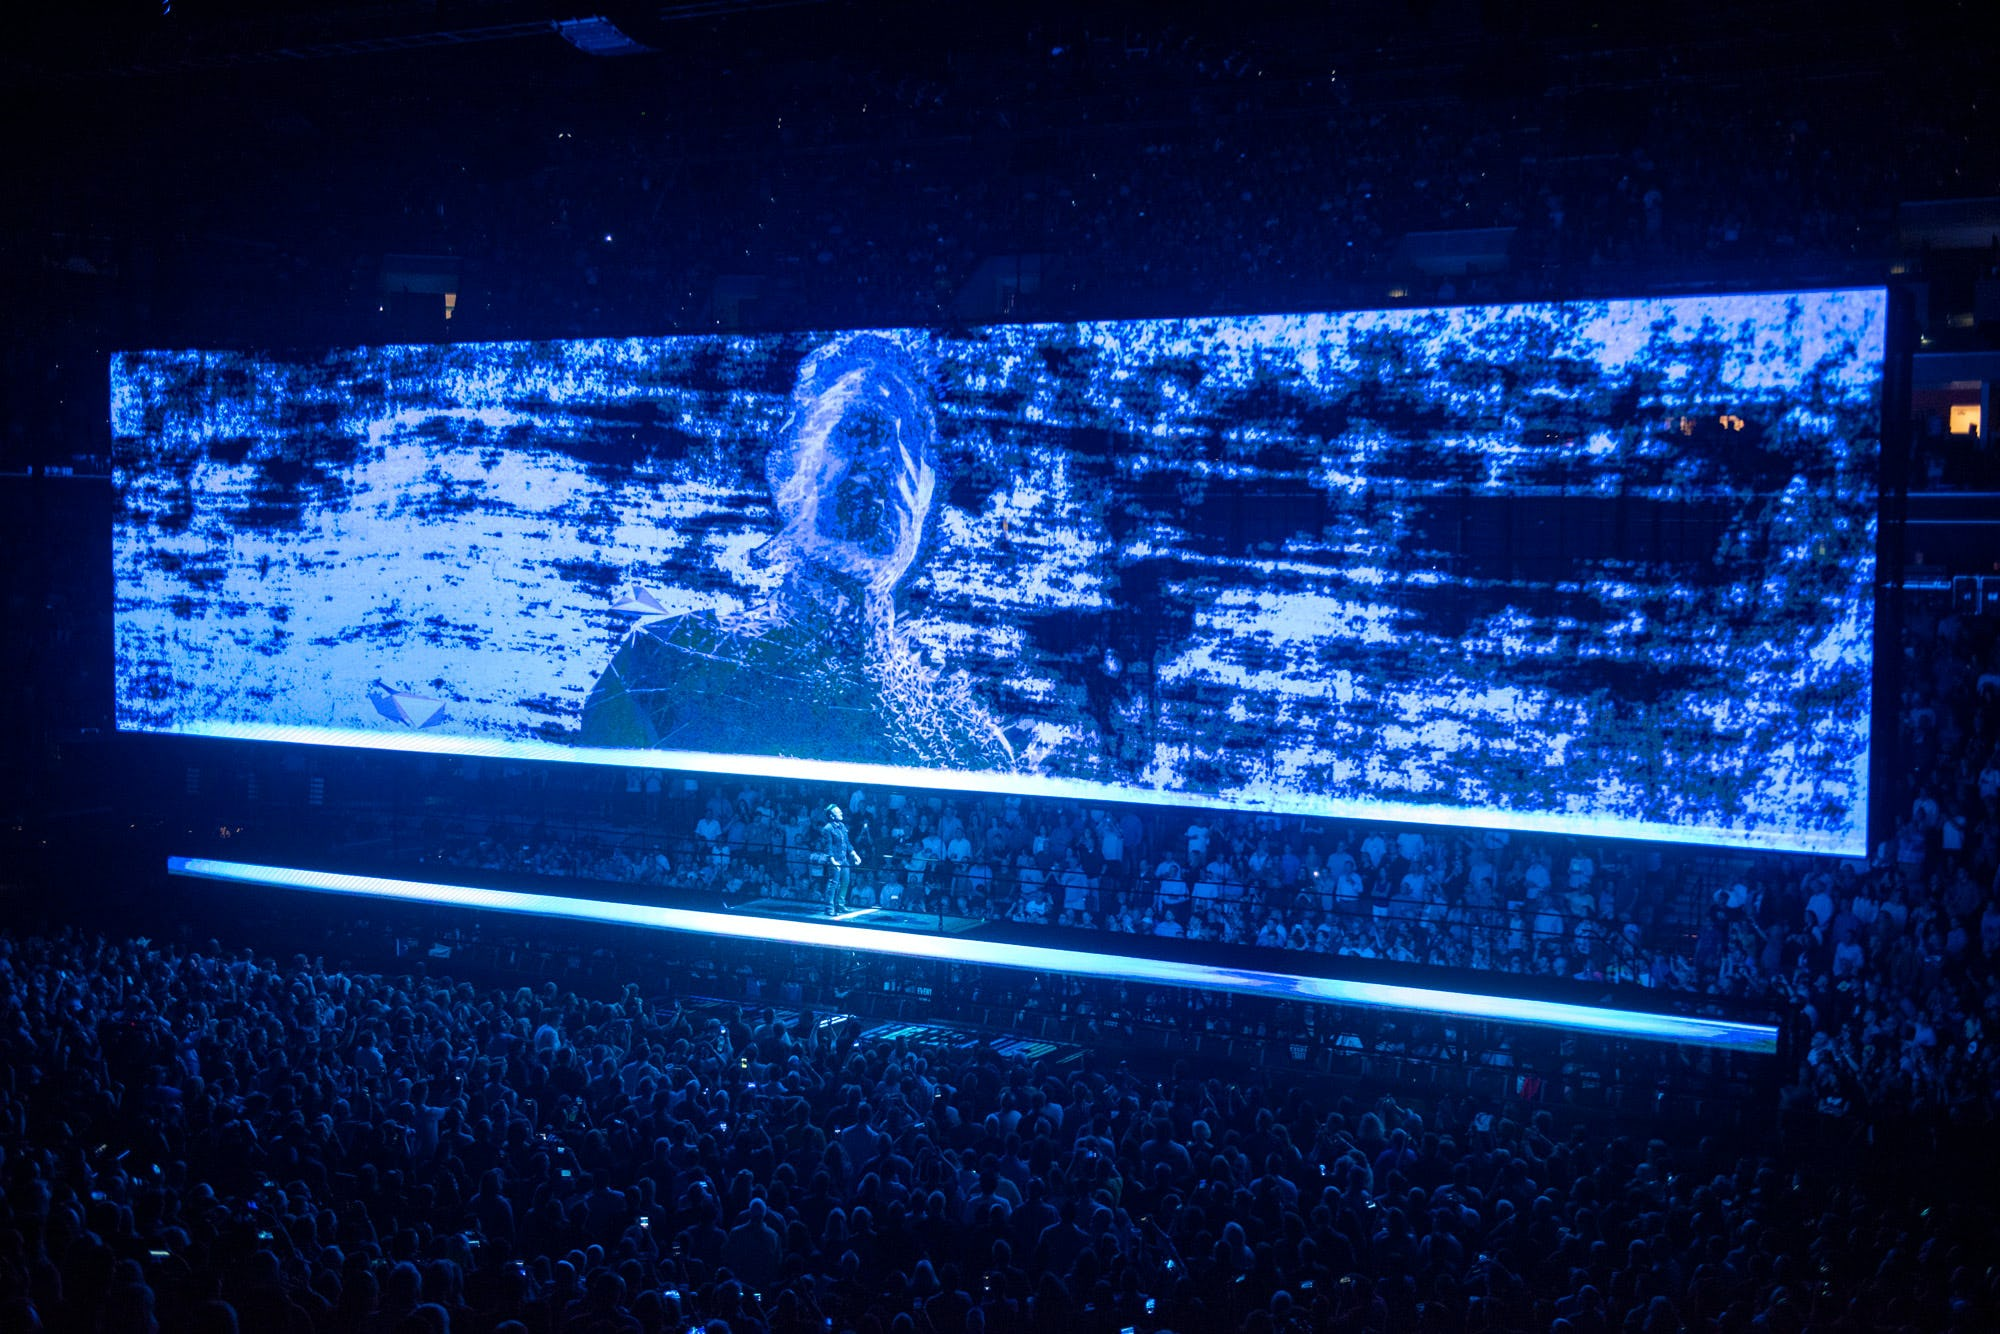 U2 AR bono on stage and face on screen